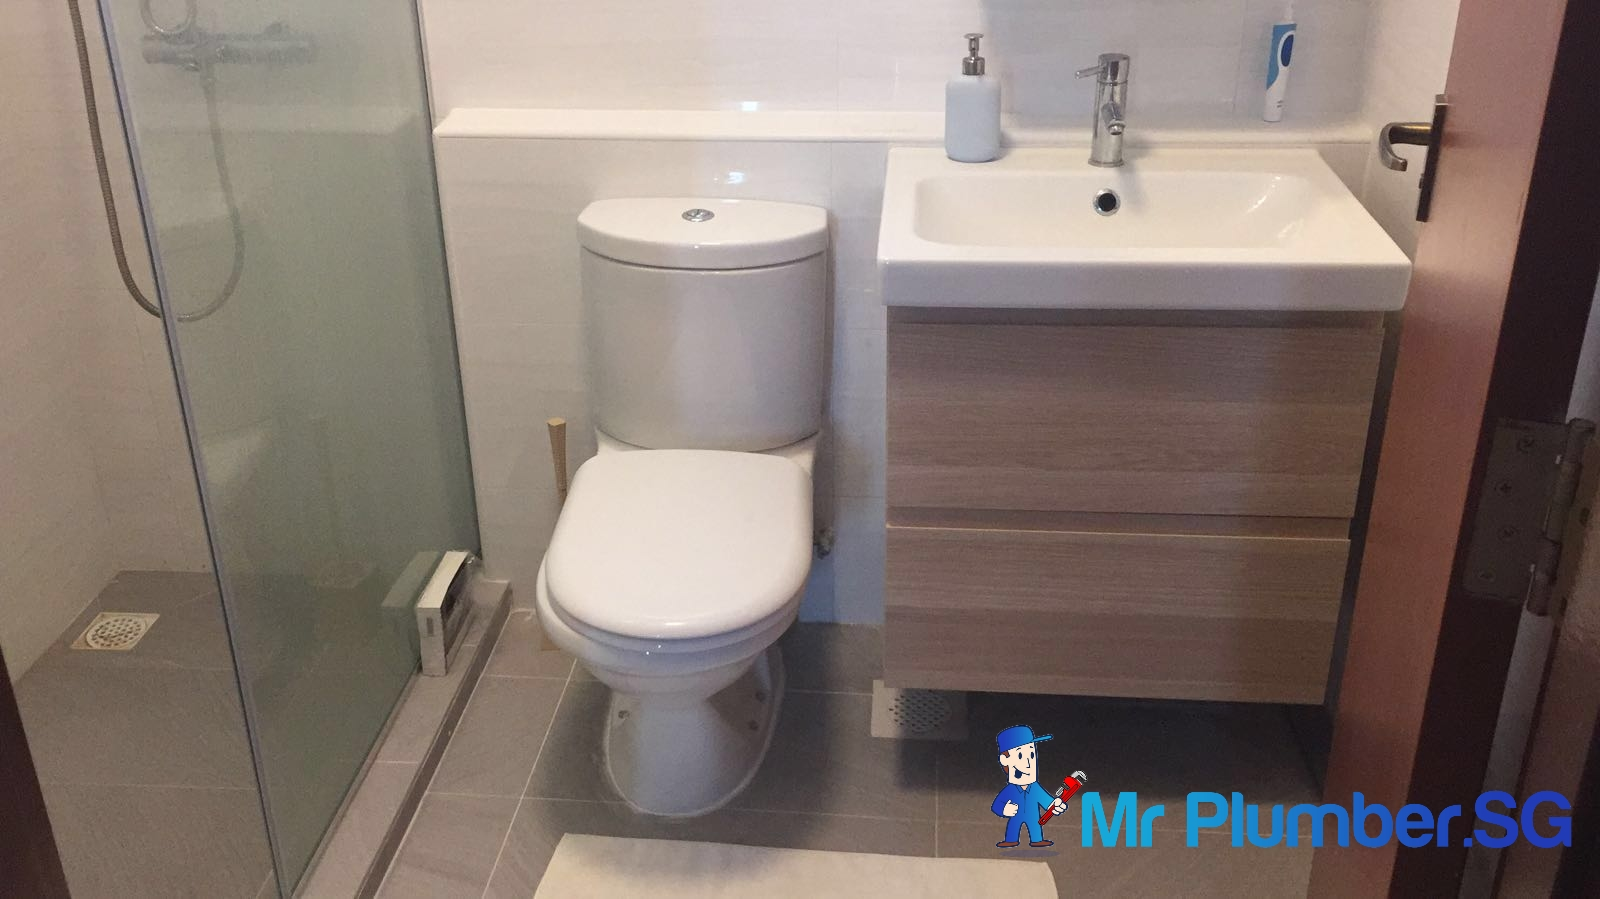 Toilet Bowl Installation / Replacement - Mr Plumber Singapore | #1 ...